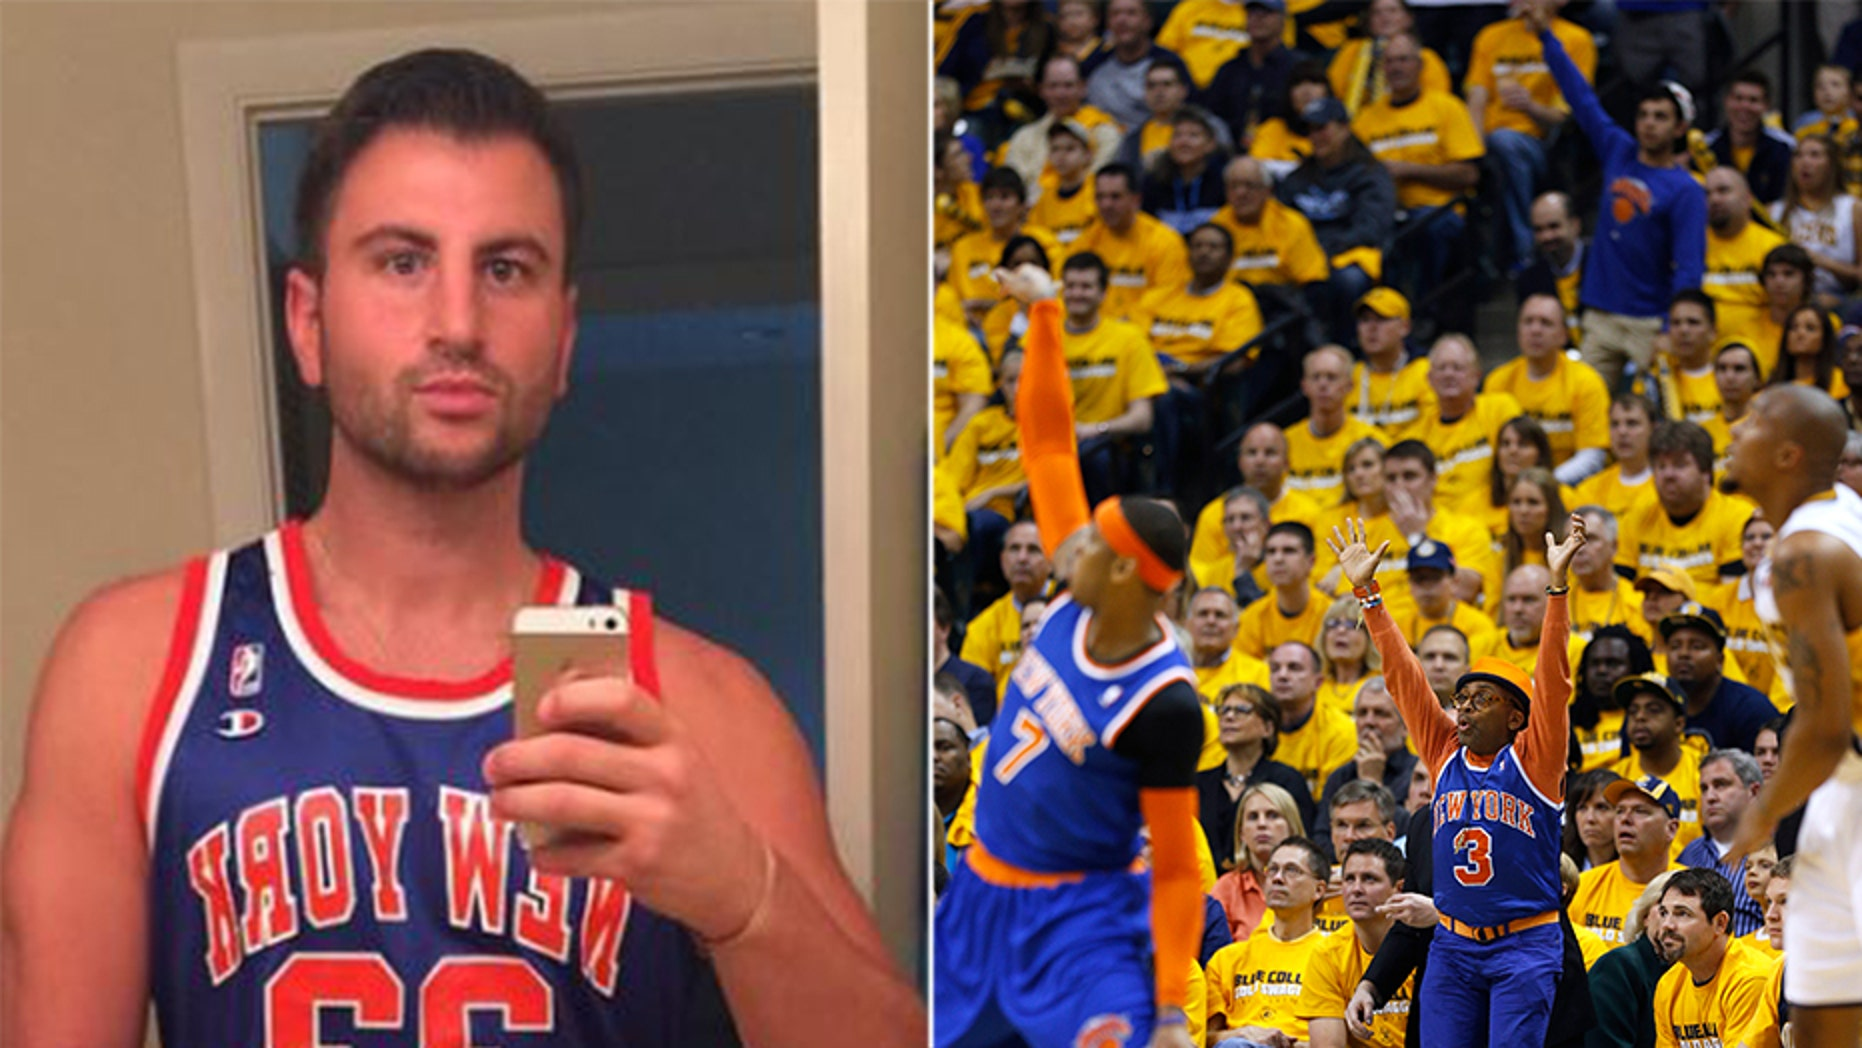 Evan Perlmutter sold his New York Knicks fandom.